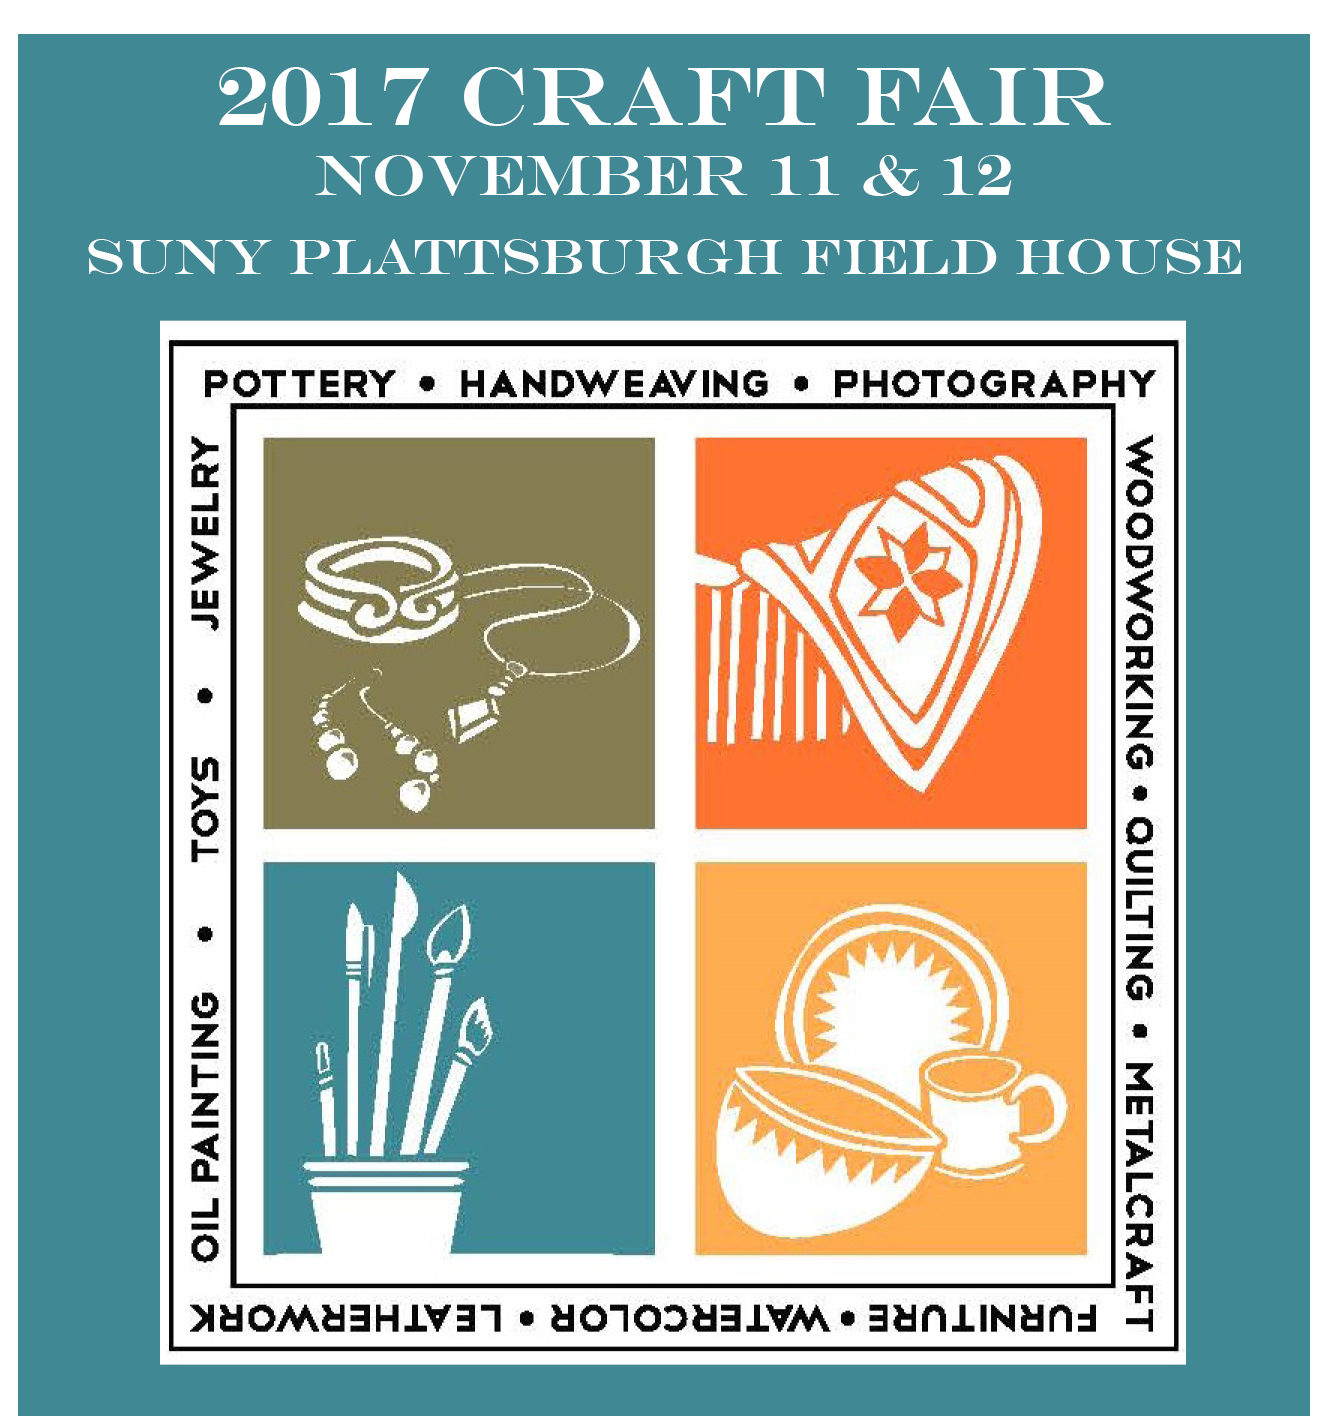 Suny Plattsburgh Arts And Crafts Fair